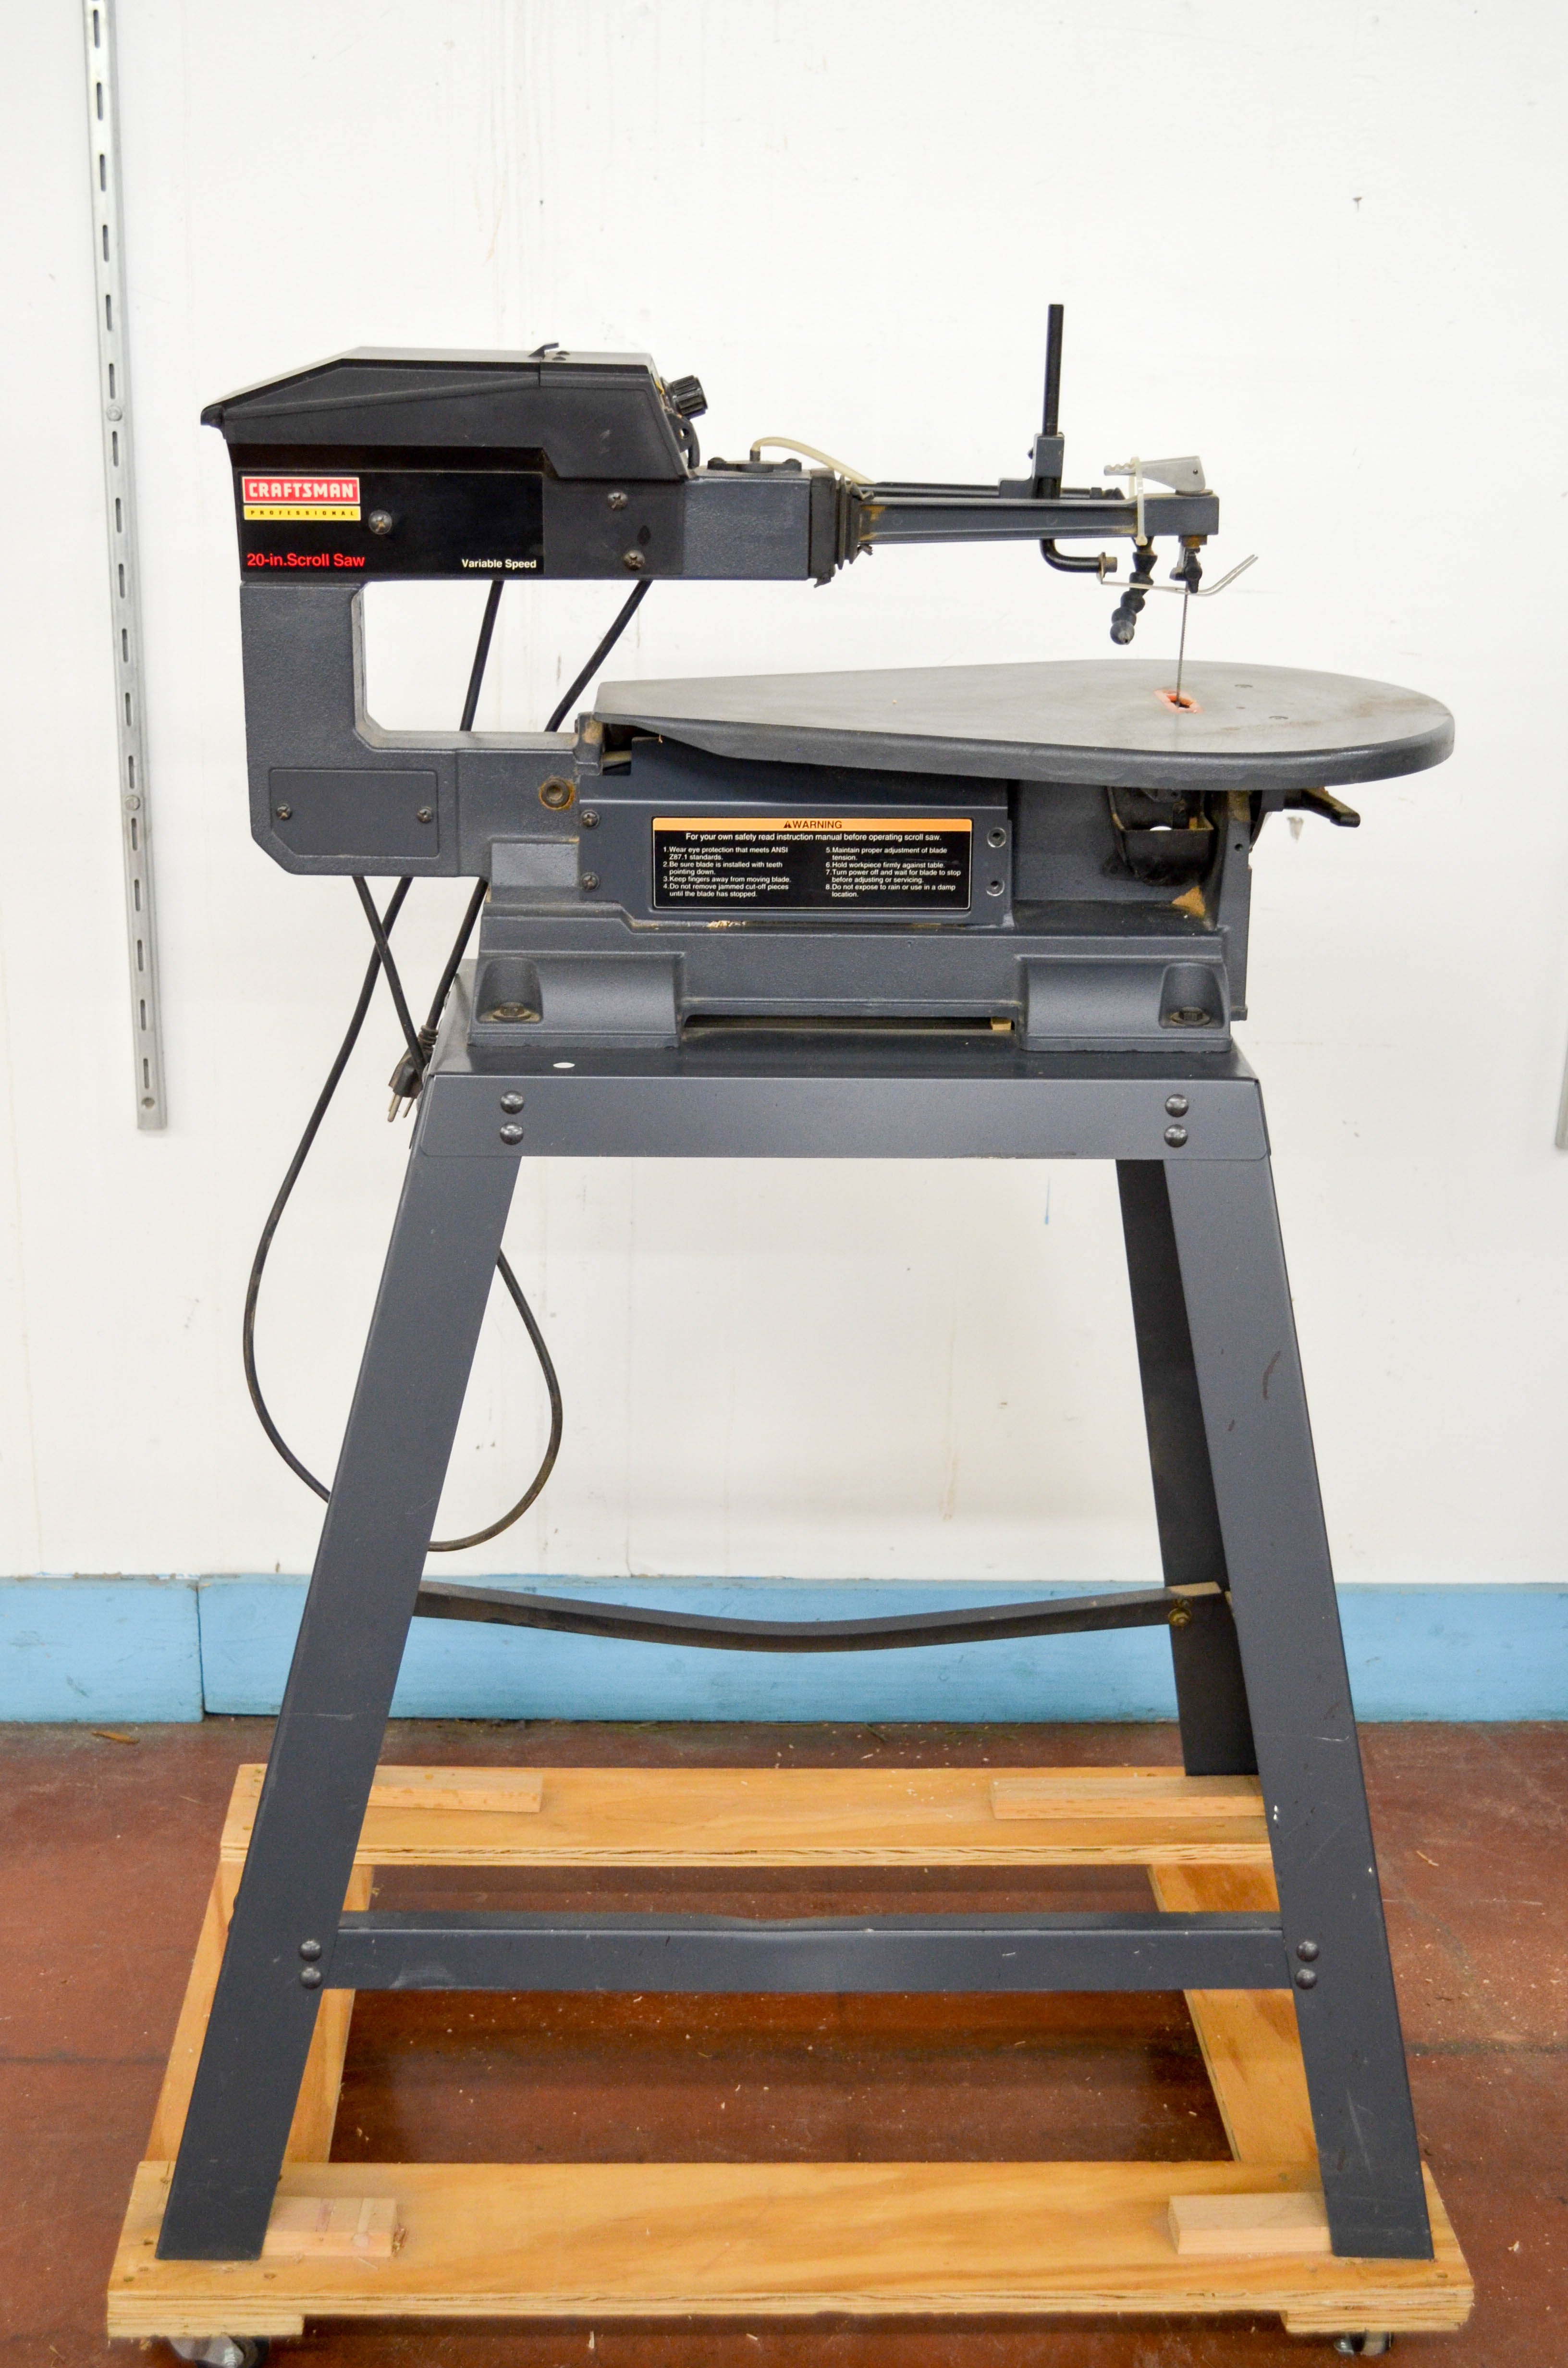 74 Craftsman 20inch Scroll Saw